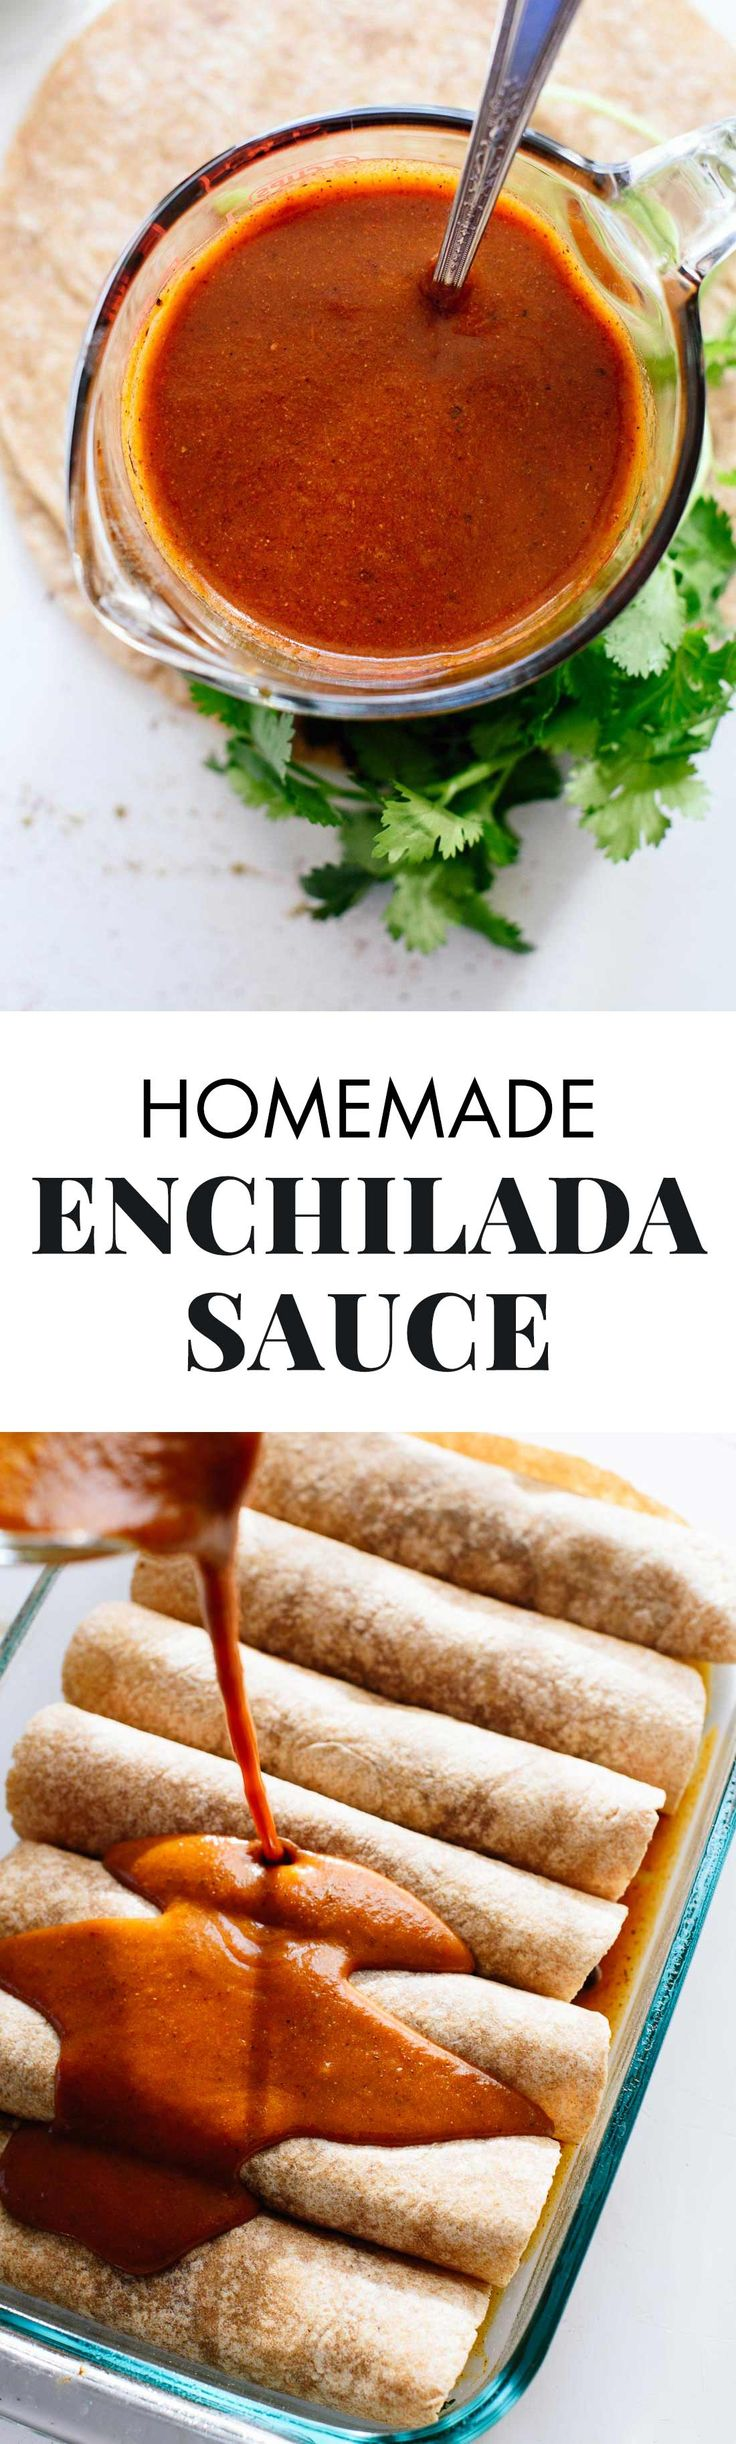 AMAZING homemade enchilada sauce — so good, you'll never use canned sauce again! This recipe comes together in under ten minutes, too.